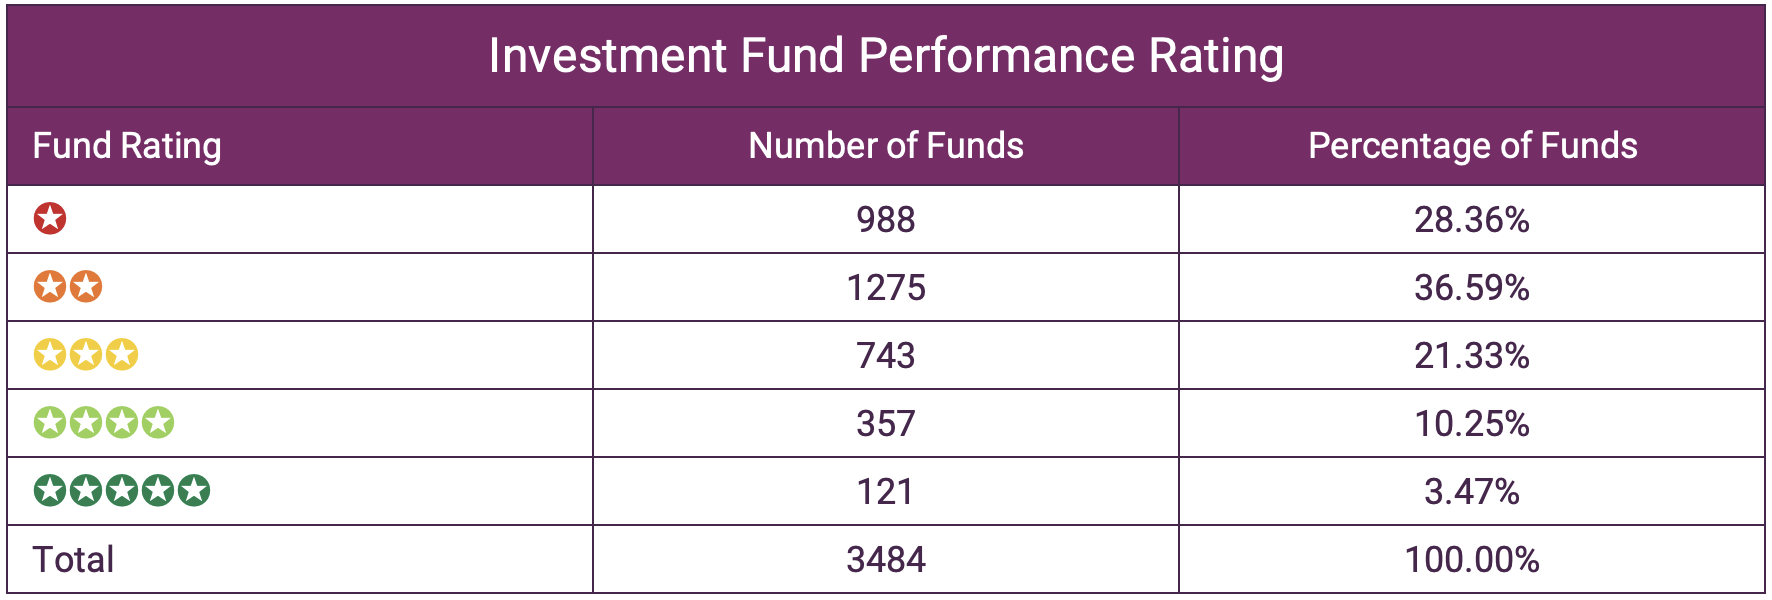 Investment fund performance rating